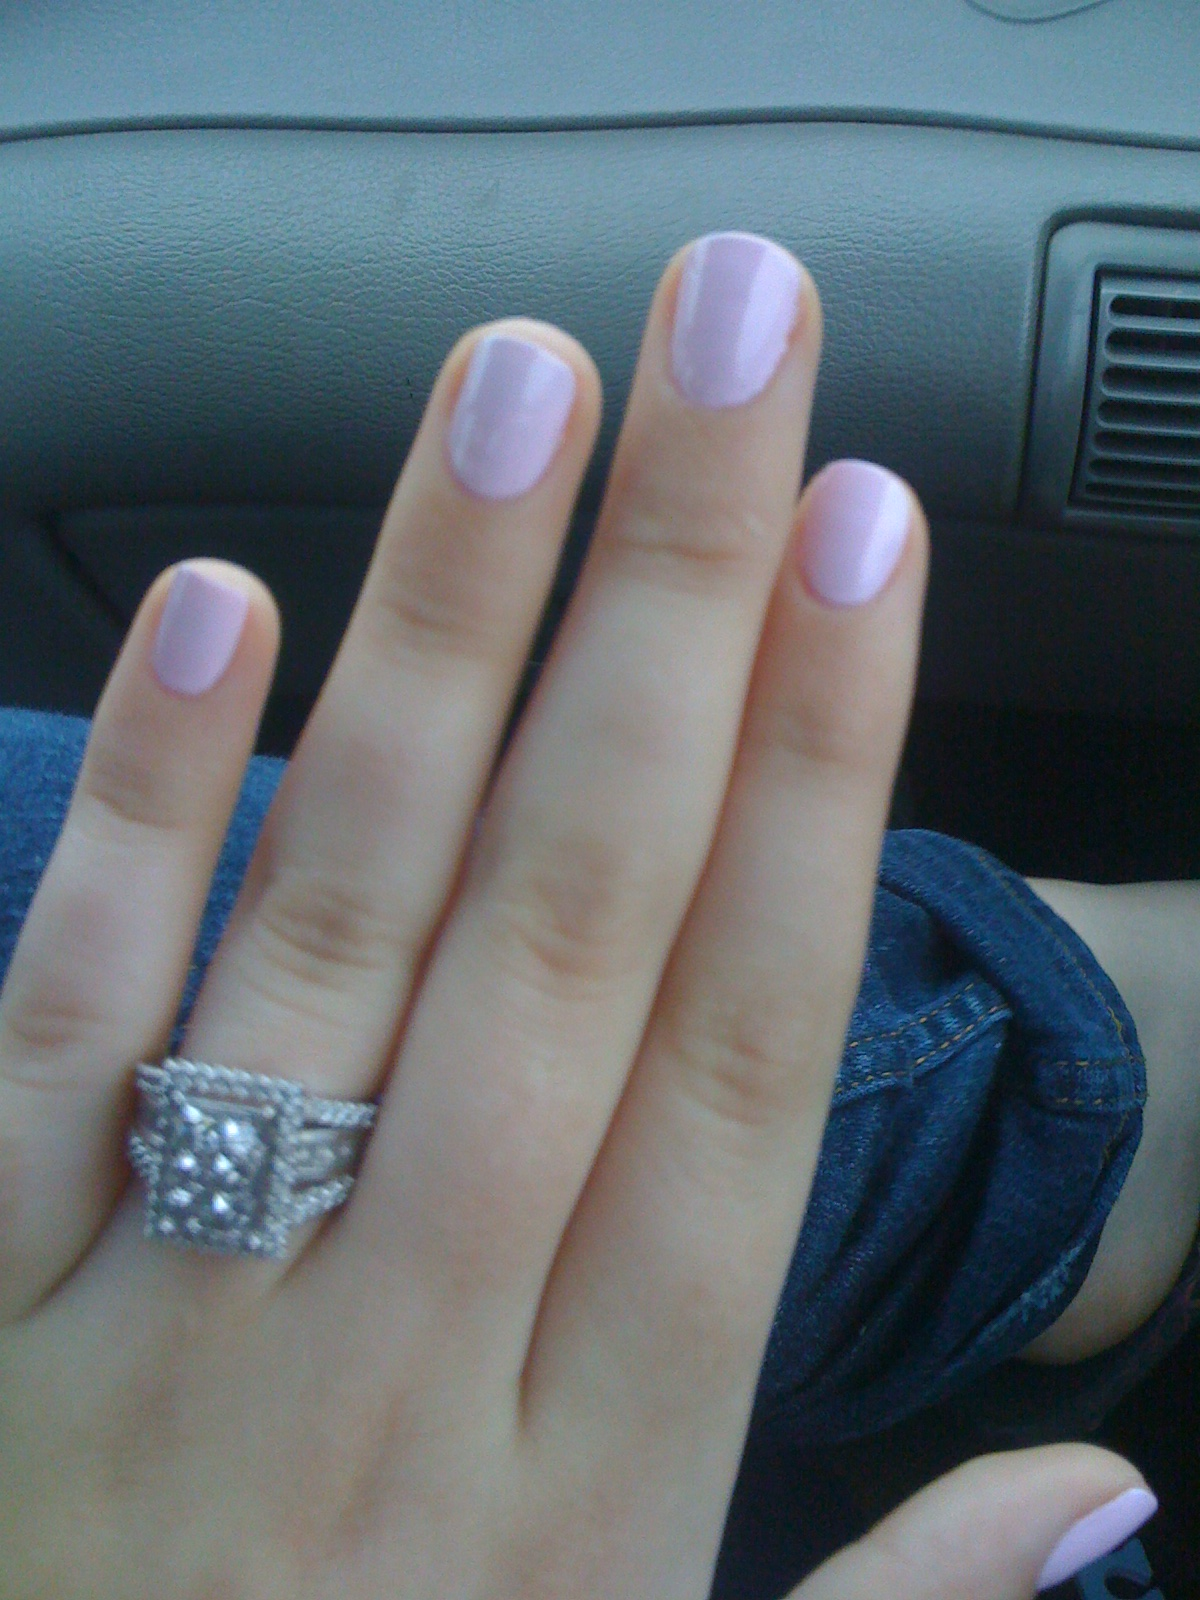 This Is Essie Nail Polish In The Color Fiji